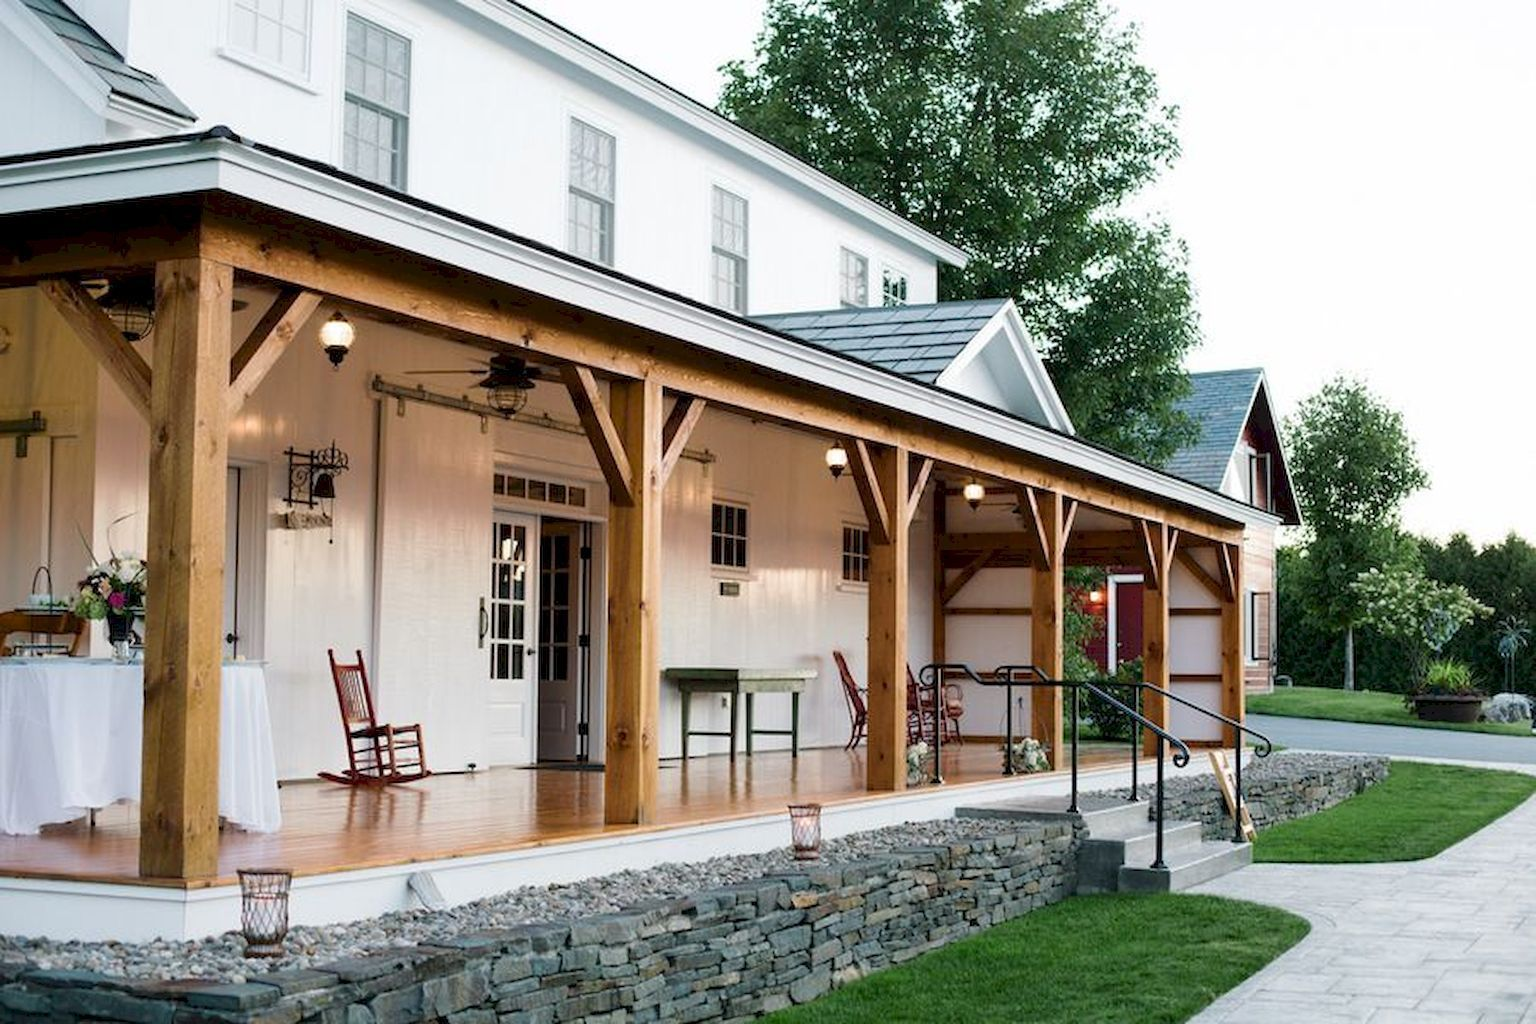 70 gorgeous farmhouse front porch decorating ideas on gorgeous modern farmhouse entryway decorating ideas produce a right one id=45343